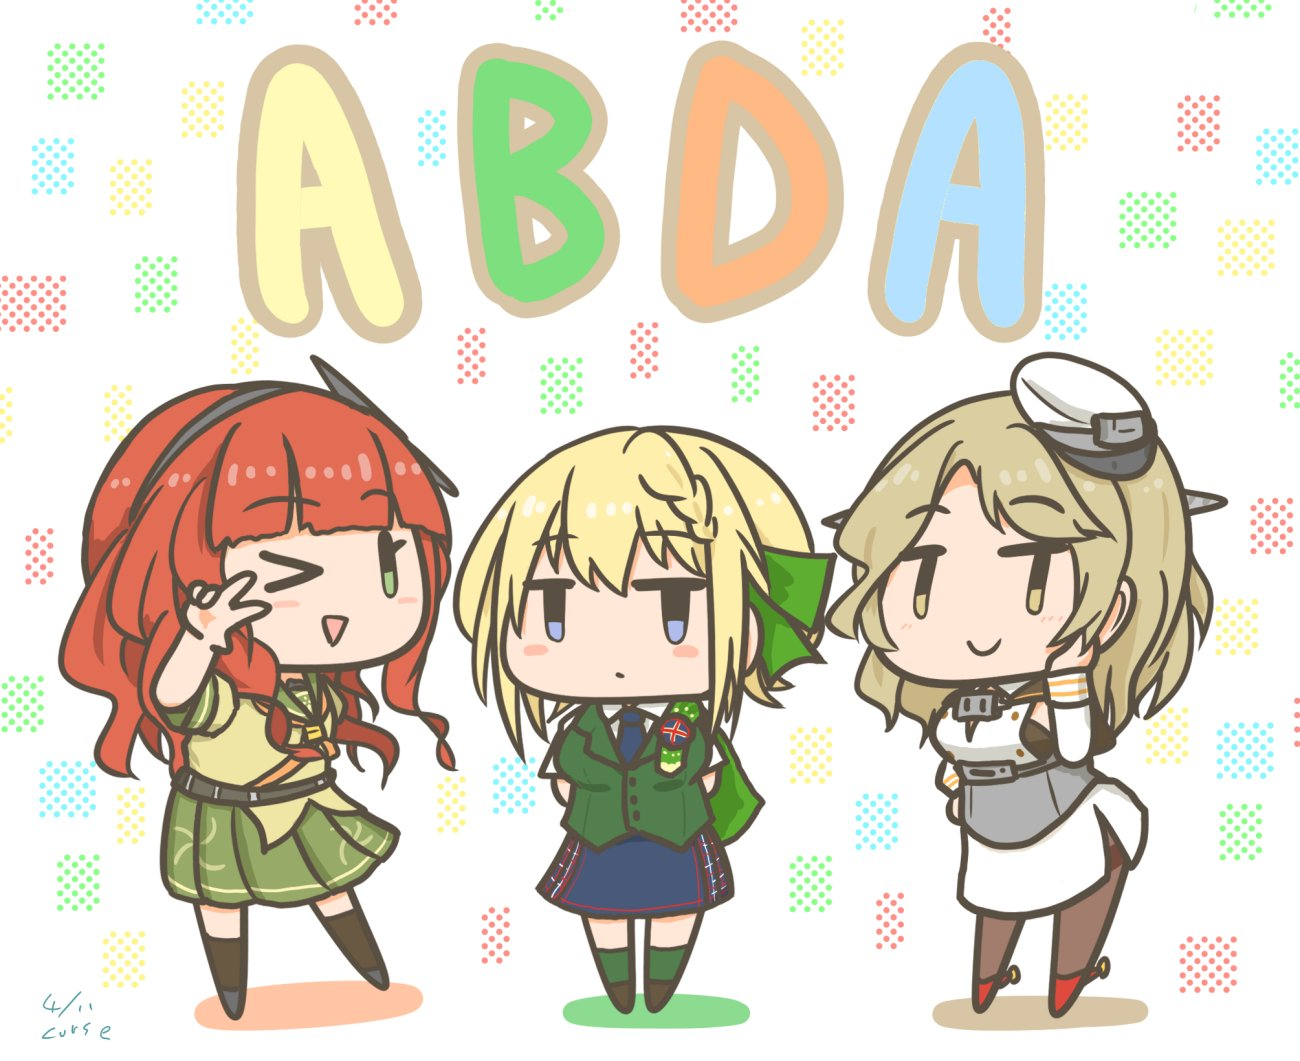 3girls arms_behind_back bangs black_legwear blonde_hair braid braided_bangs breasts chibi cloak curse_(023) dated de_ruyter_(kancolle) eyebrows_visible_through_hair green_legwear green_vest hair_ribbon hairband hat headgear houston_(kancolle) kantai_collection light_brown_hair long_hair multiple_girls necktie open_mouth pantyhose perth_(kancolle) plaid plaid_skirt pleated_skirt redhead ribbon sailor_collar shirt short_sleeves signature simple_background skirt smile thigh-highs v vest white_shirt